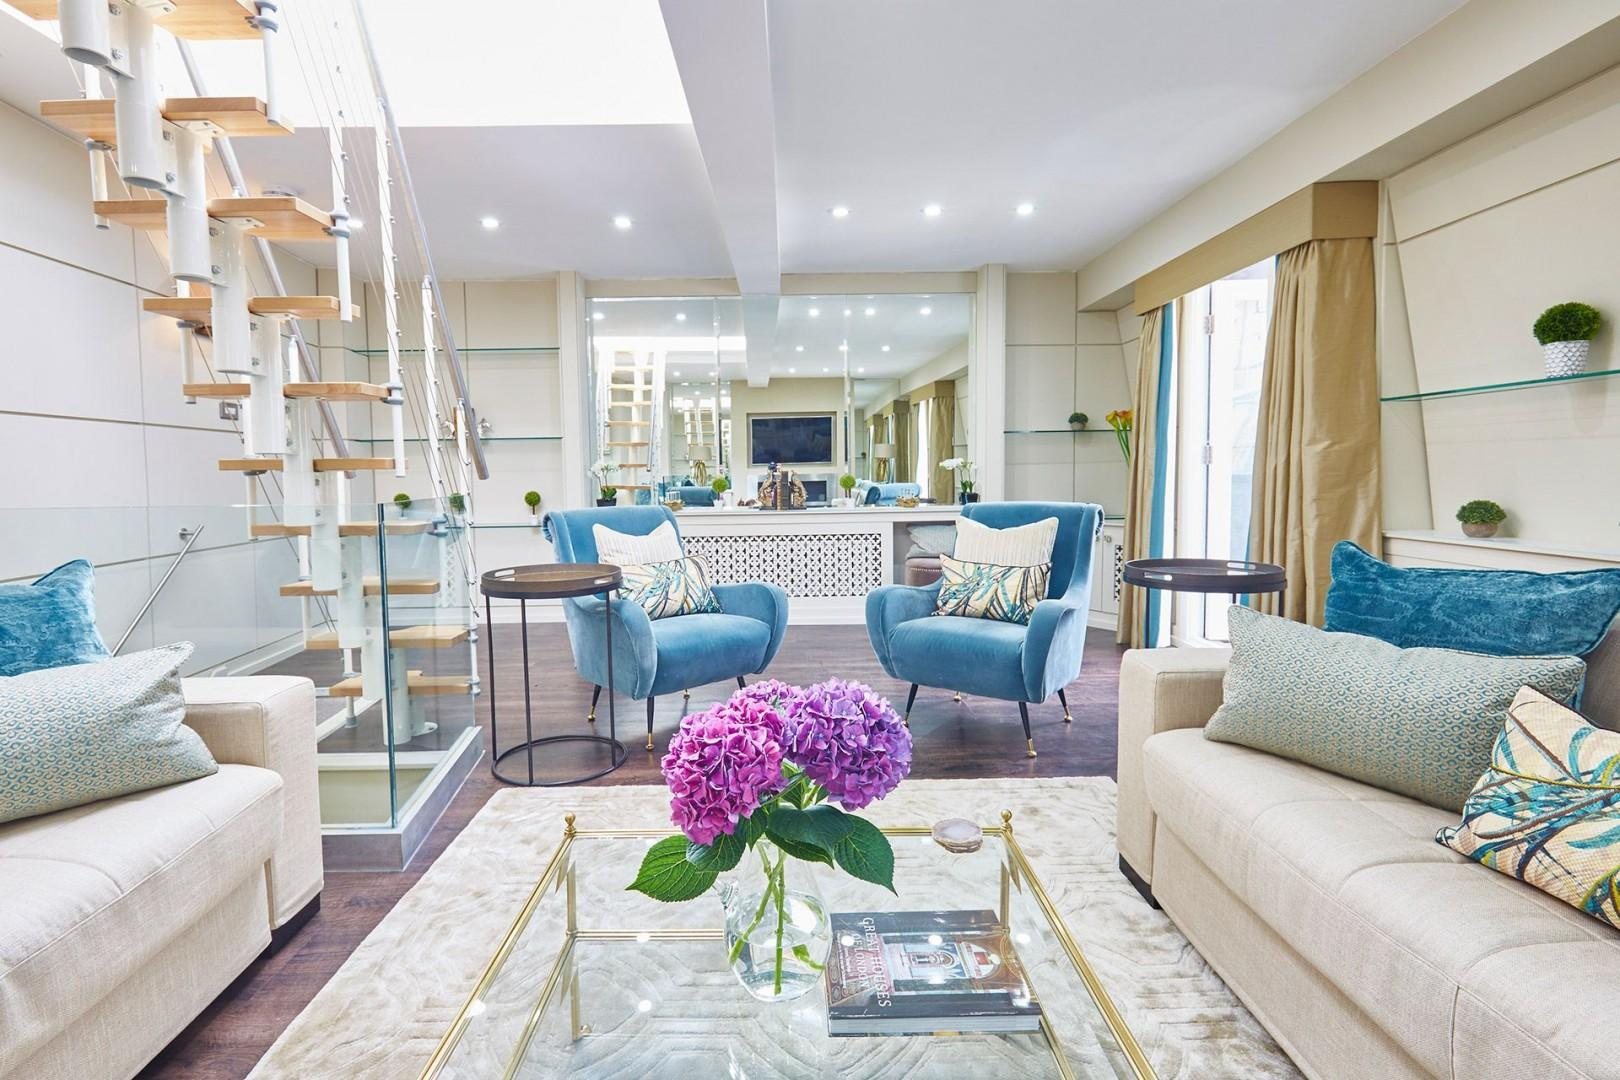 Step into the spacious living room